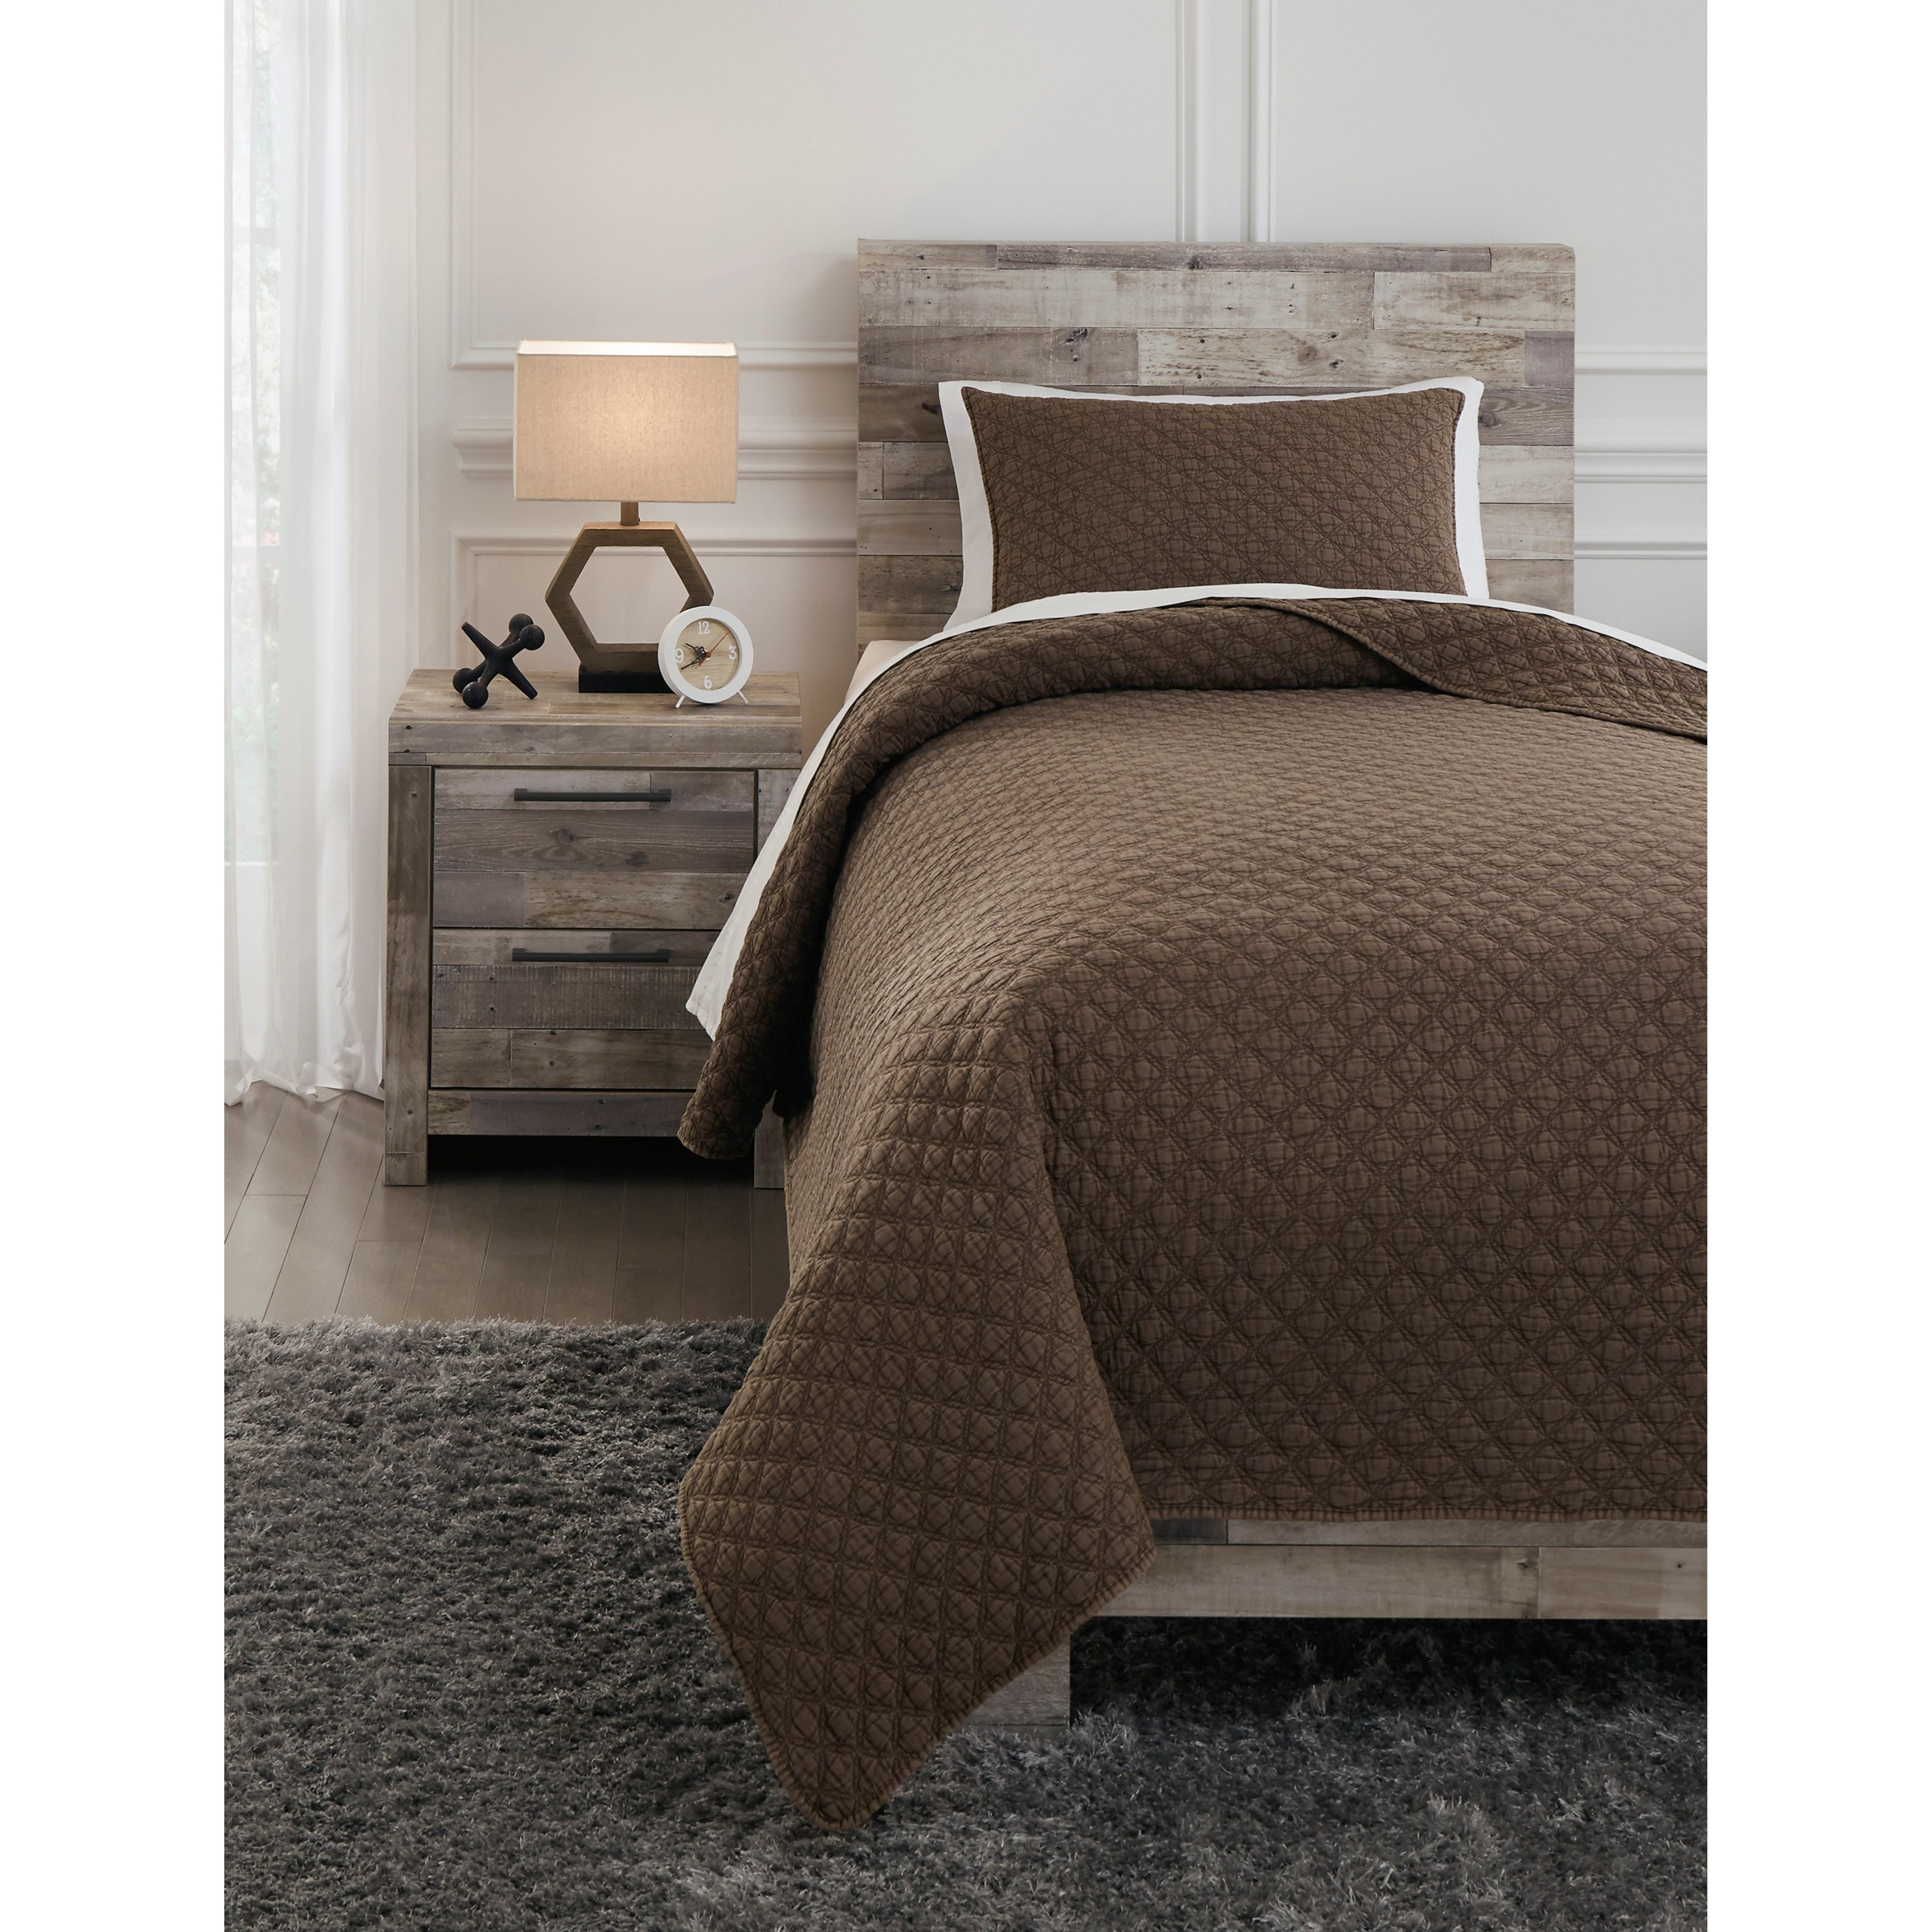 Bedding Sets Twin Ryter Brown Coverlet Set by Signature Design by Ashley at Northeast Factory Direct